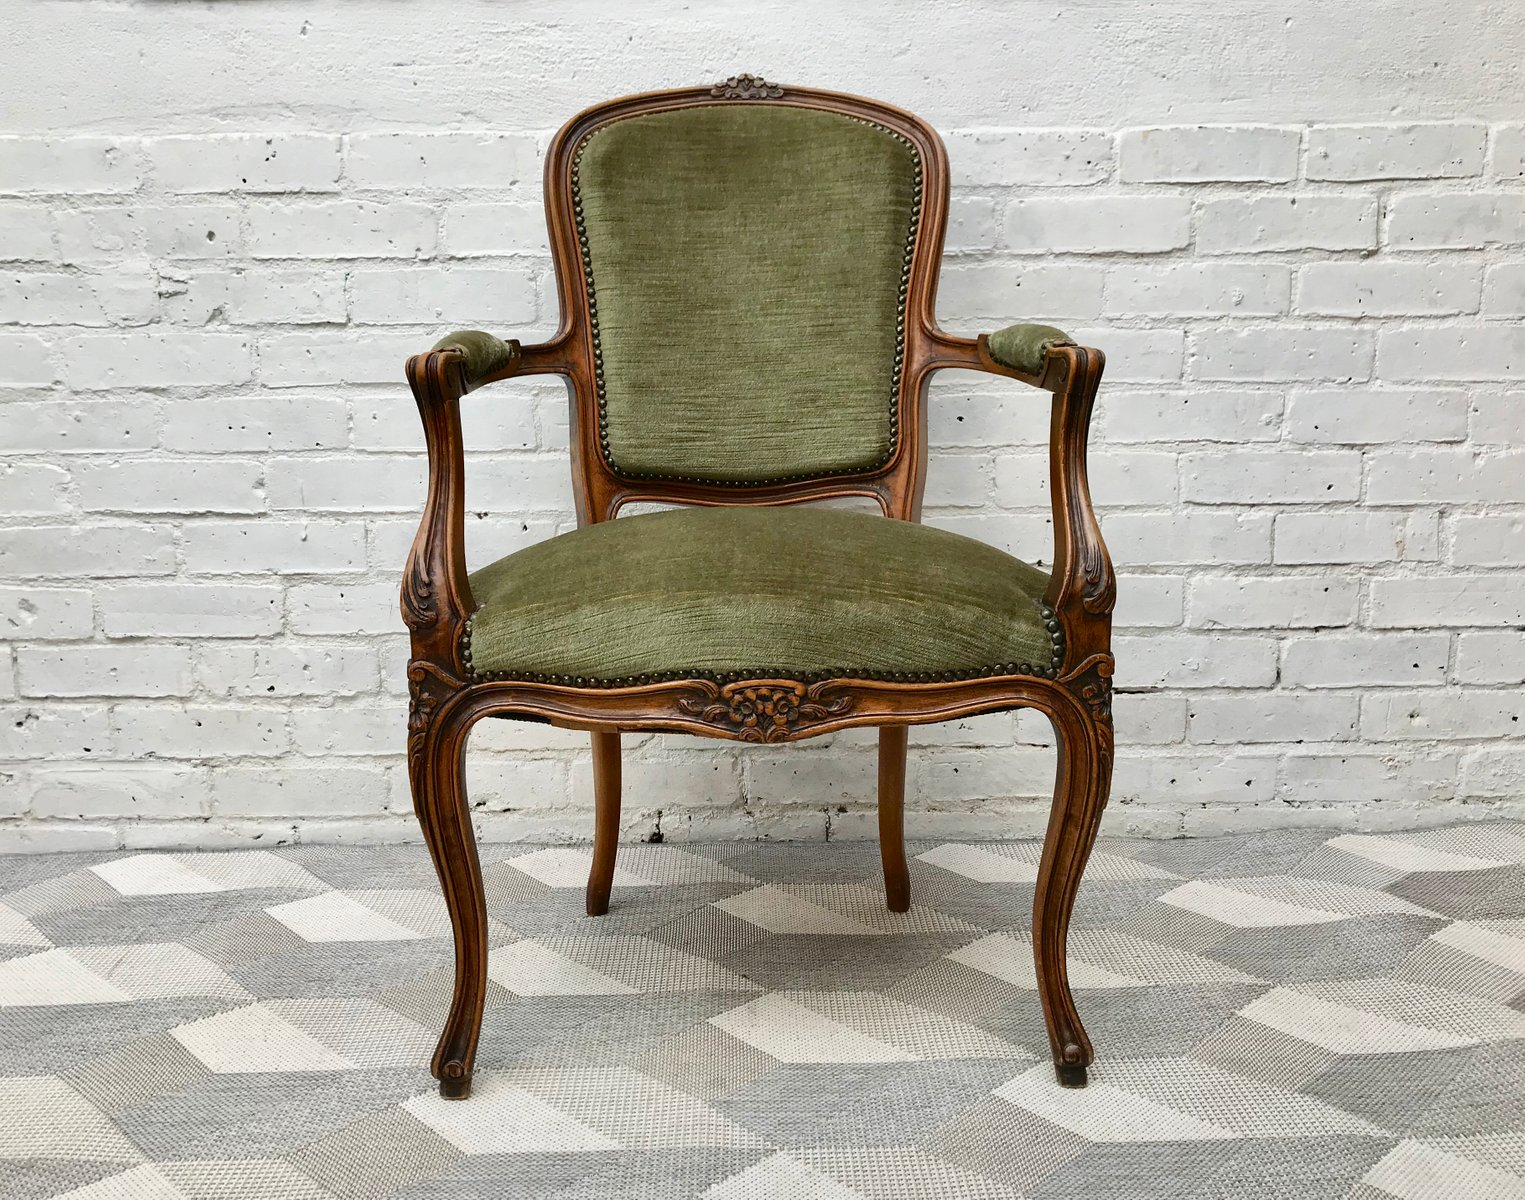 Vintage french louis xvi style wooden chair for sale at pamono